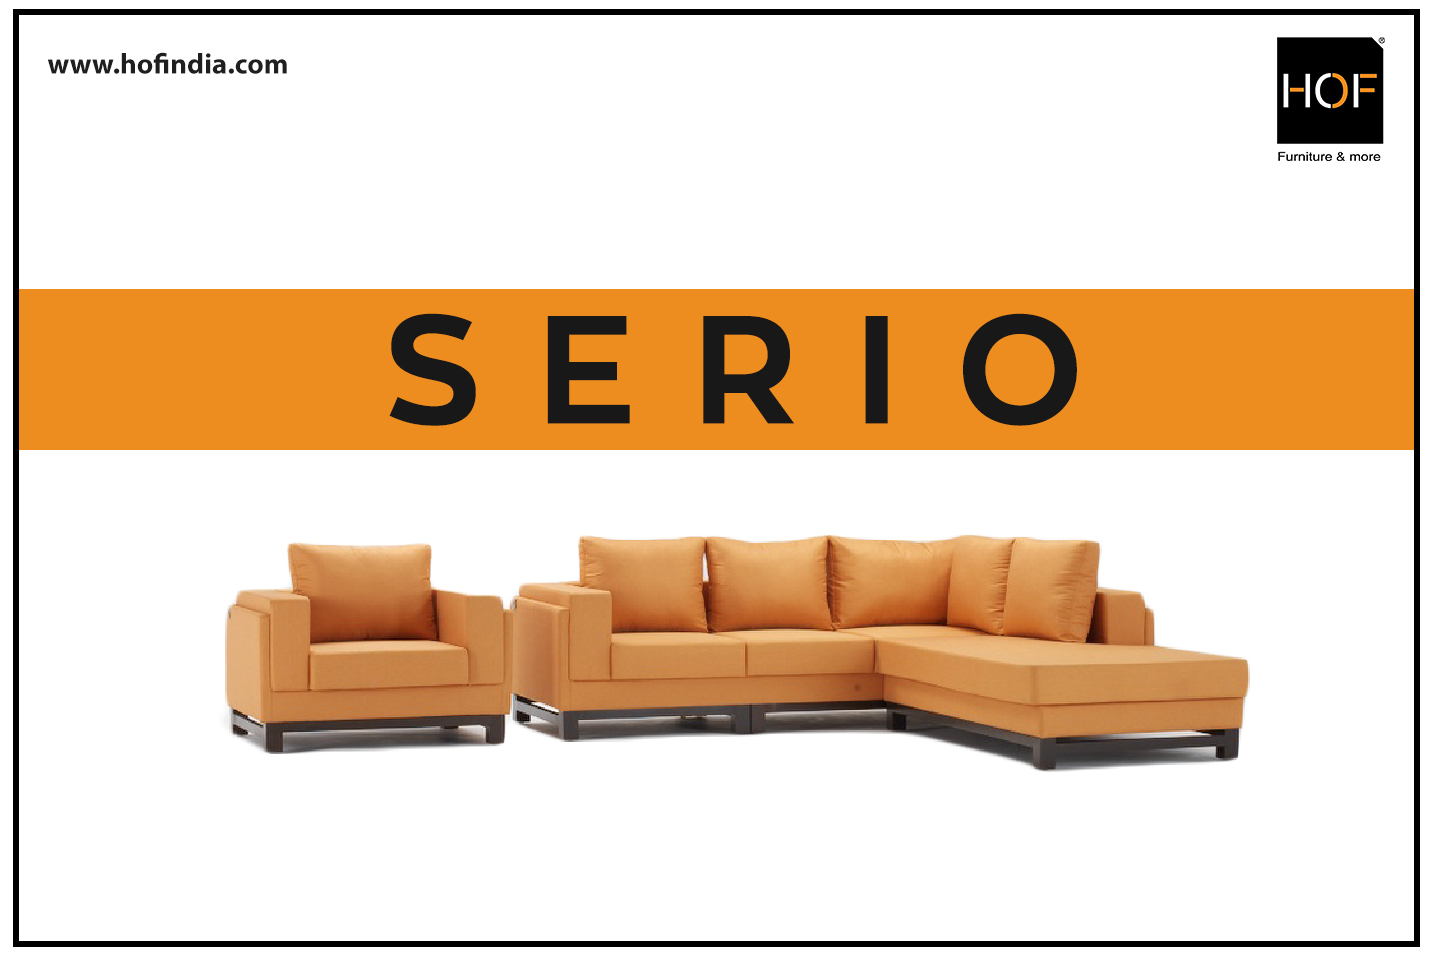 HOF Sectional Fabric Sofa - SERIO